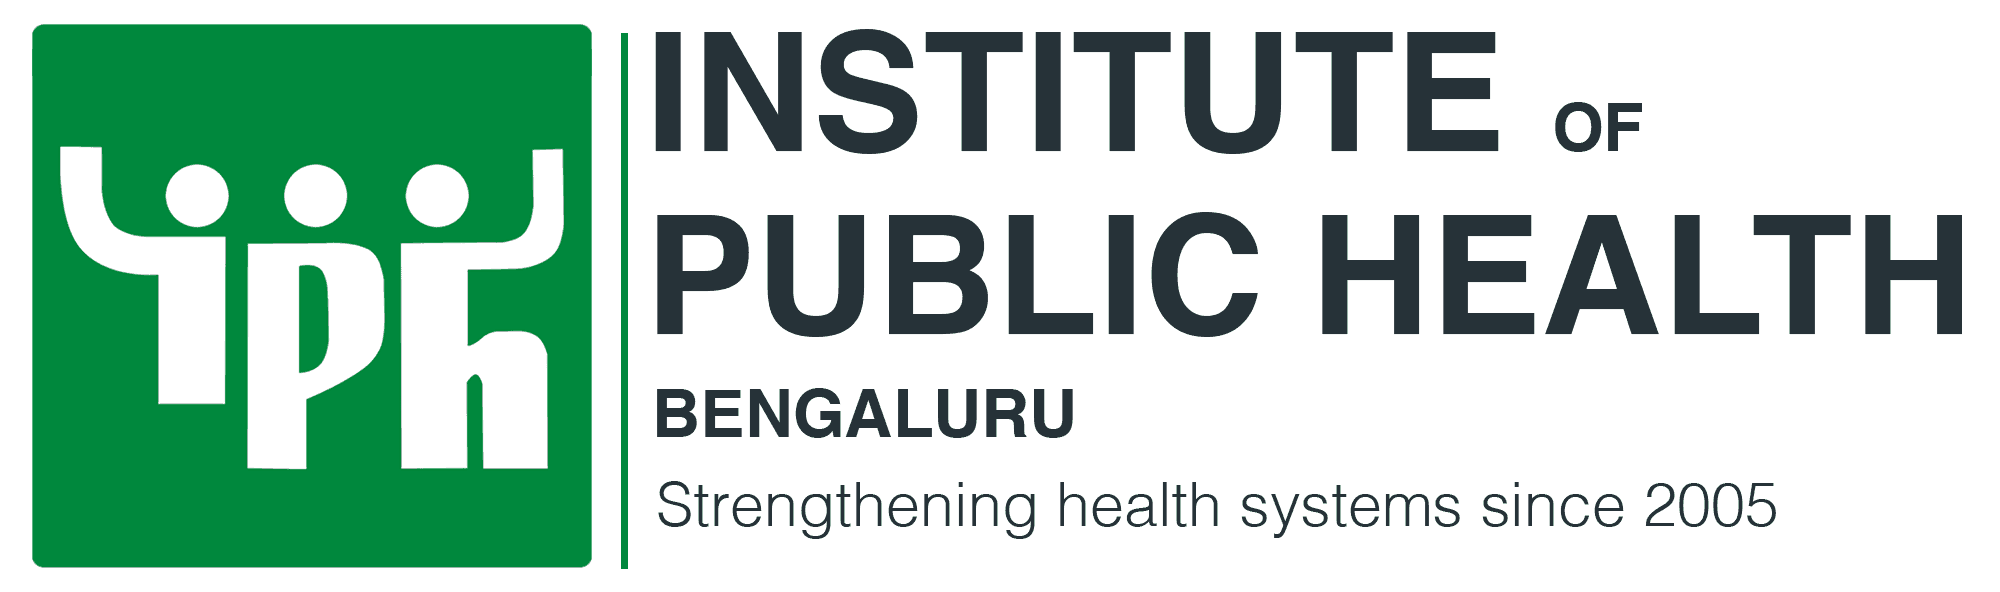 Institute of Public Health, Bengaluru